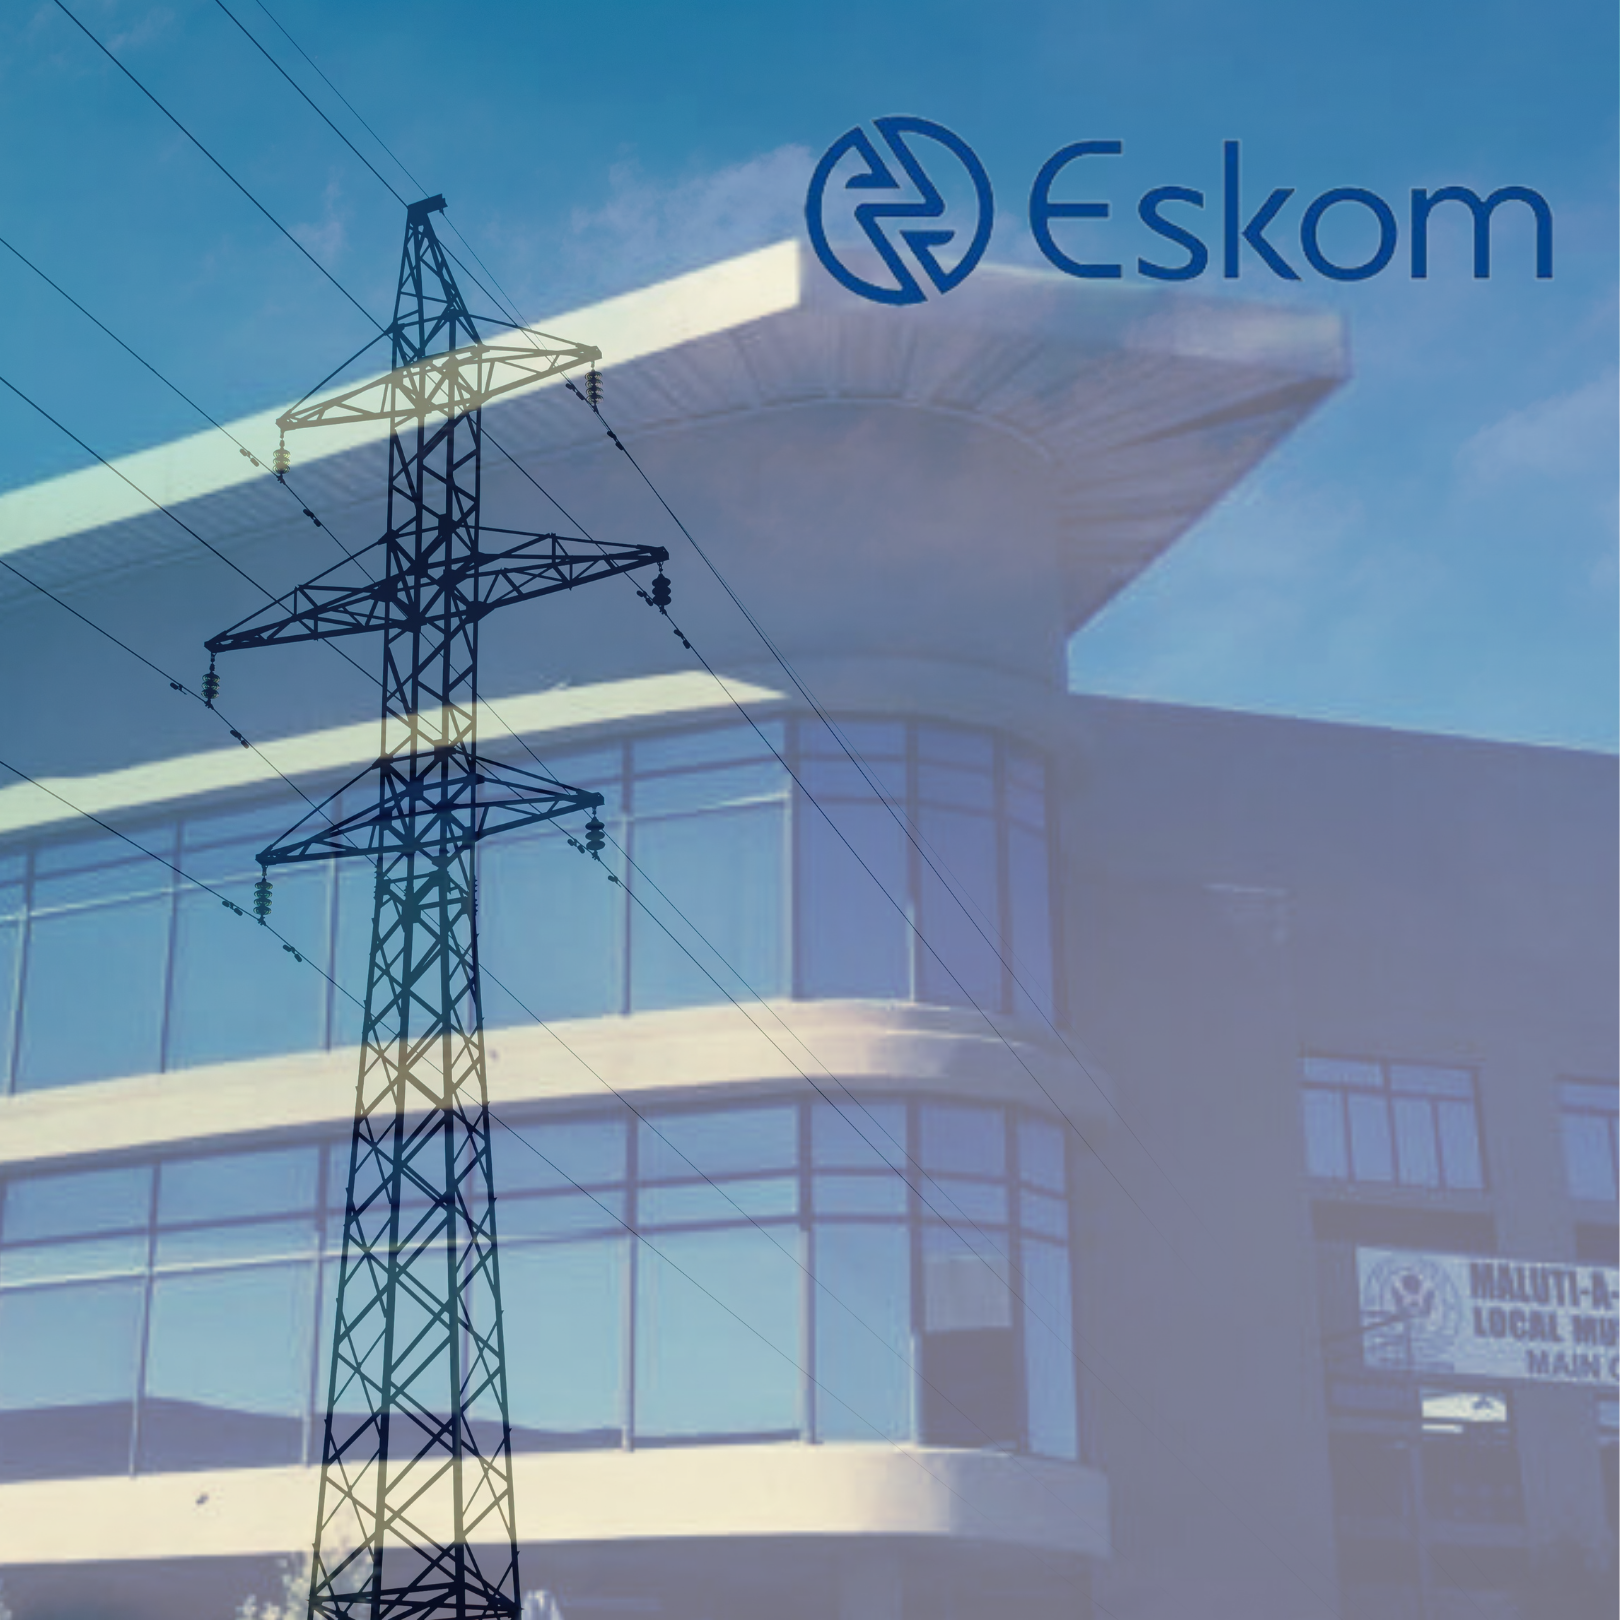 DA welcomes historic agreement between MaP and Eskom